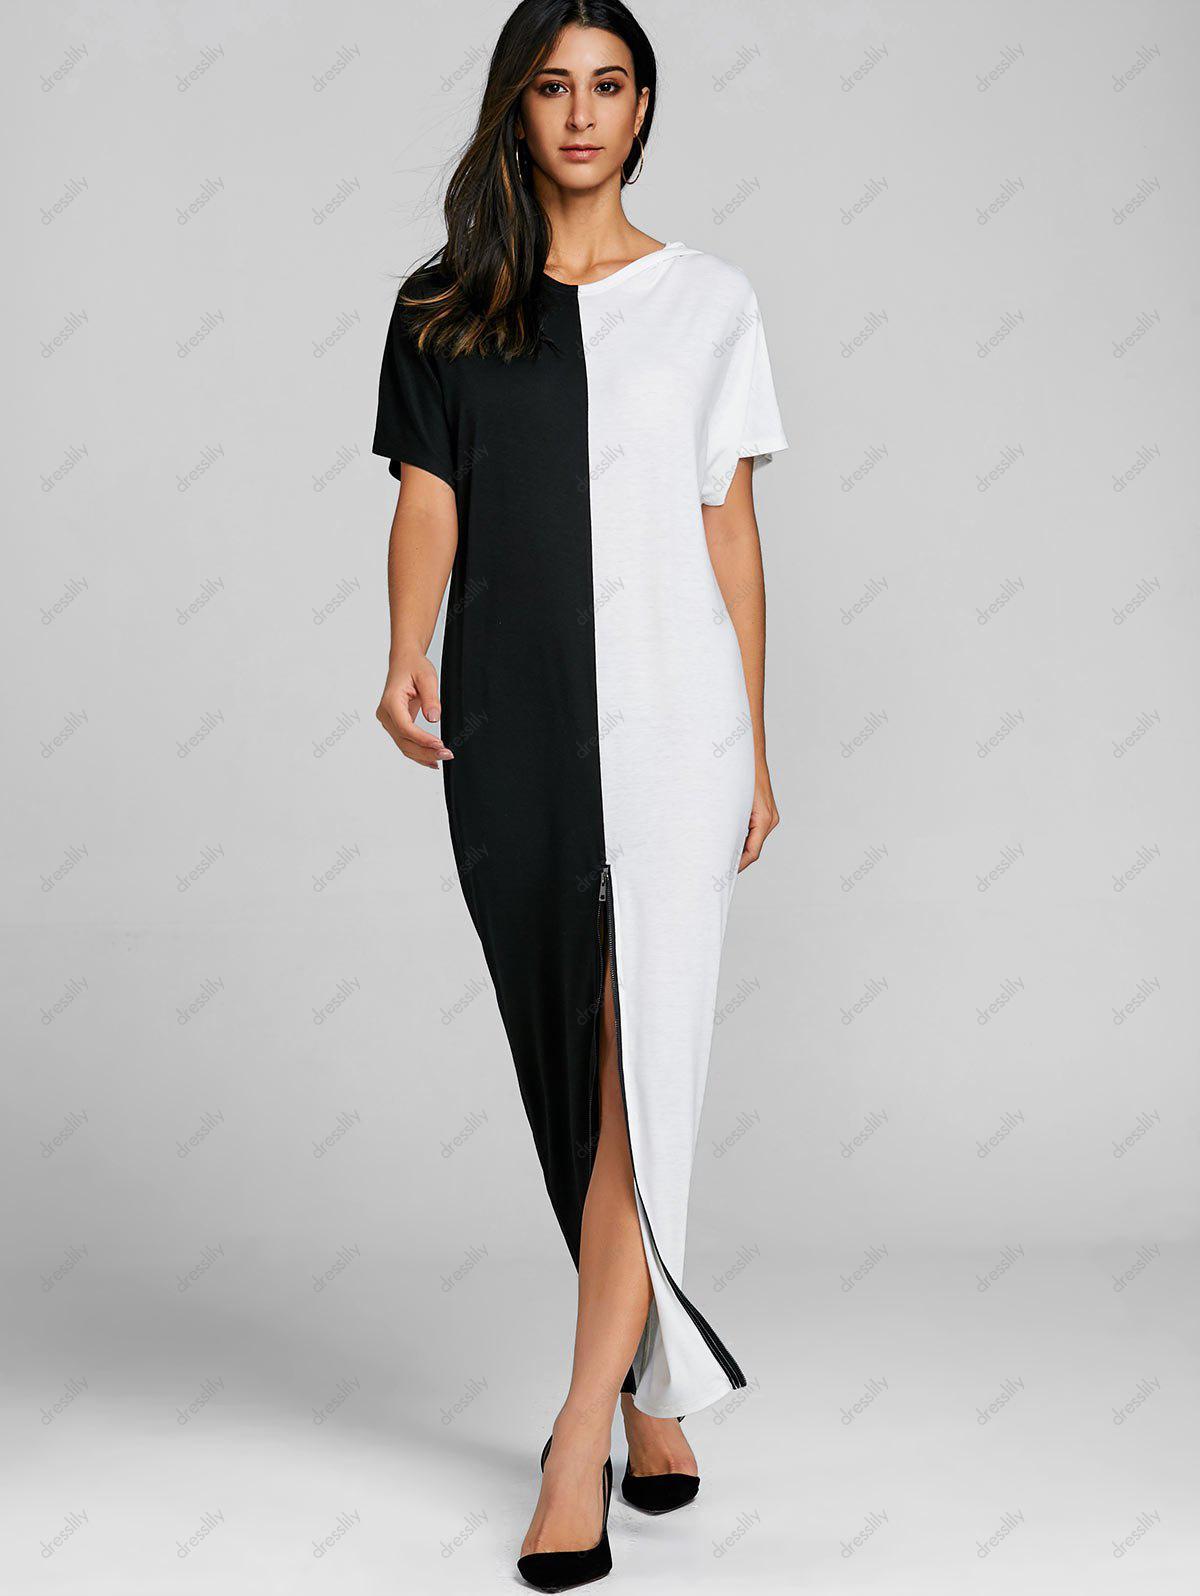 High Split Color Block Maxi Dress - WHITE/BLACK 2XL